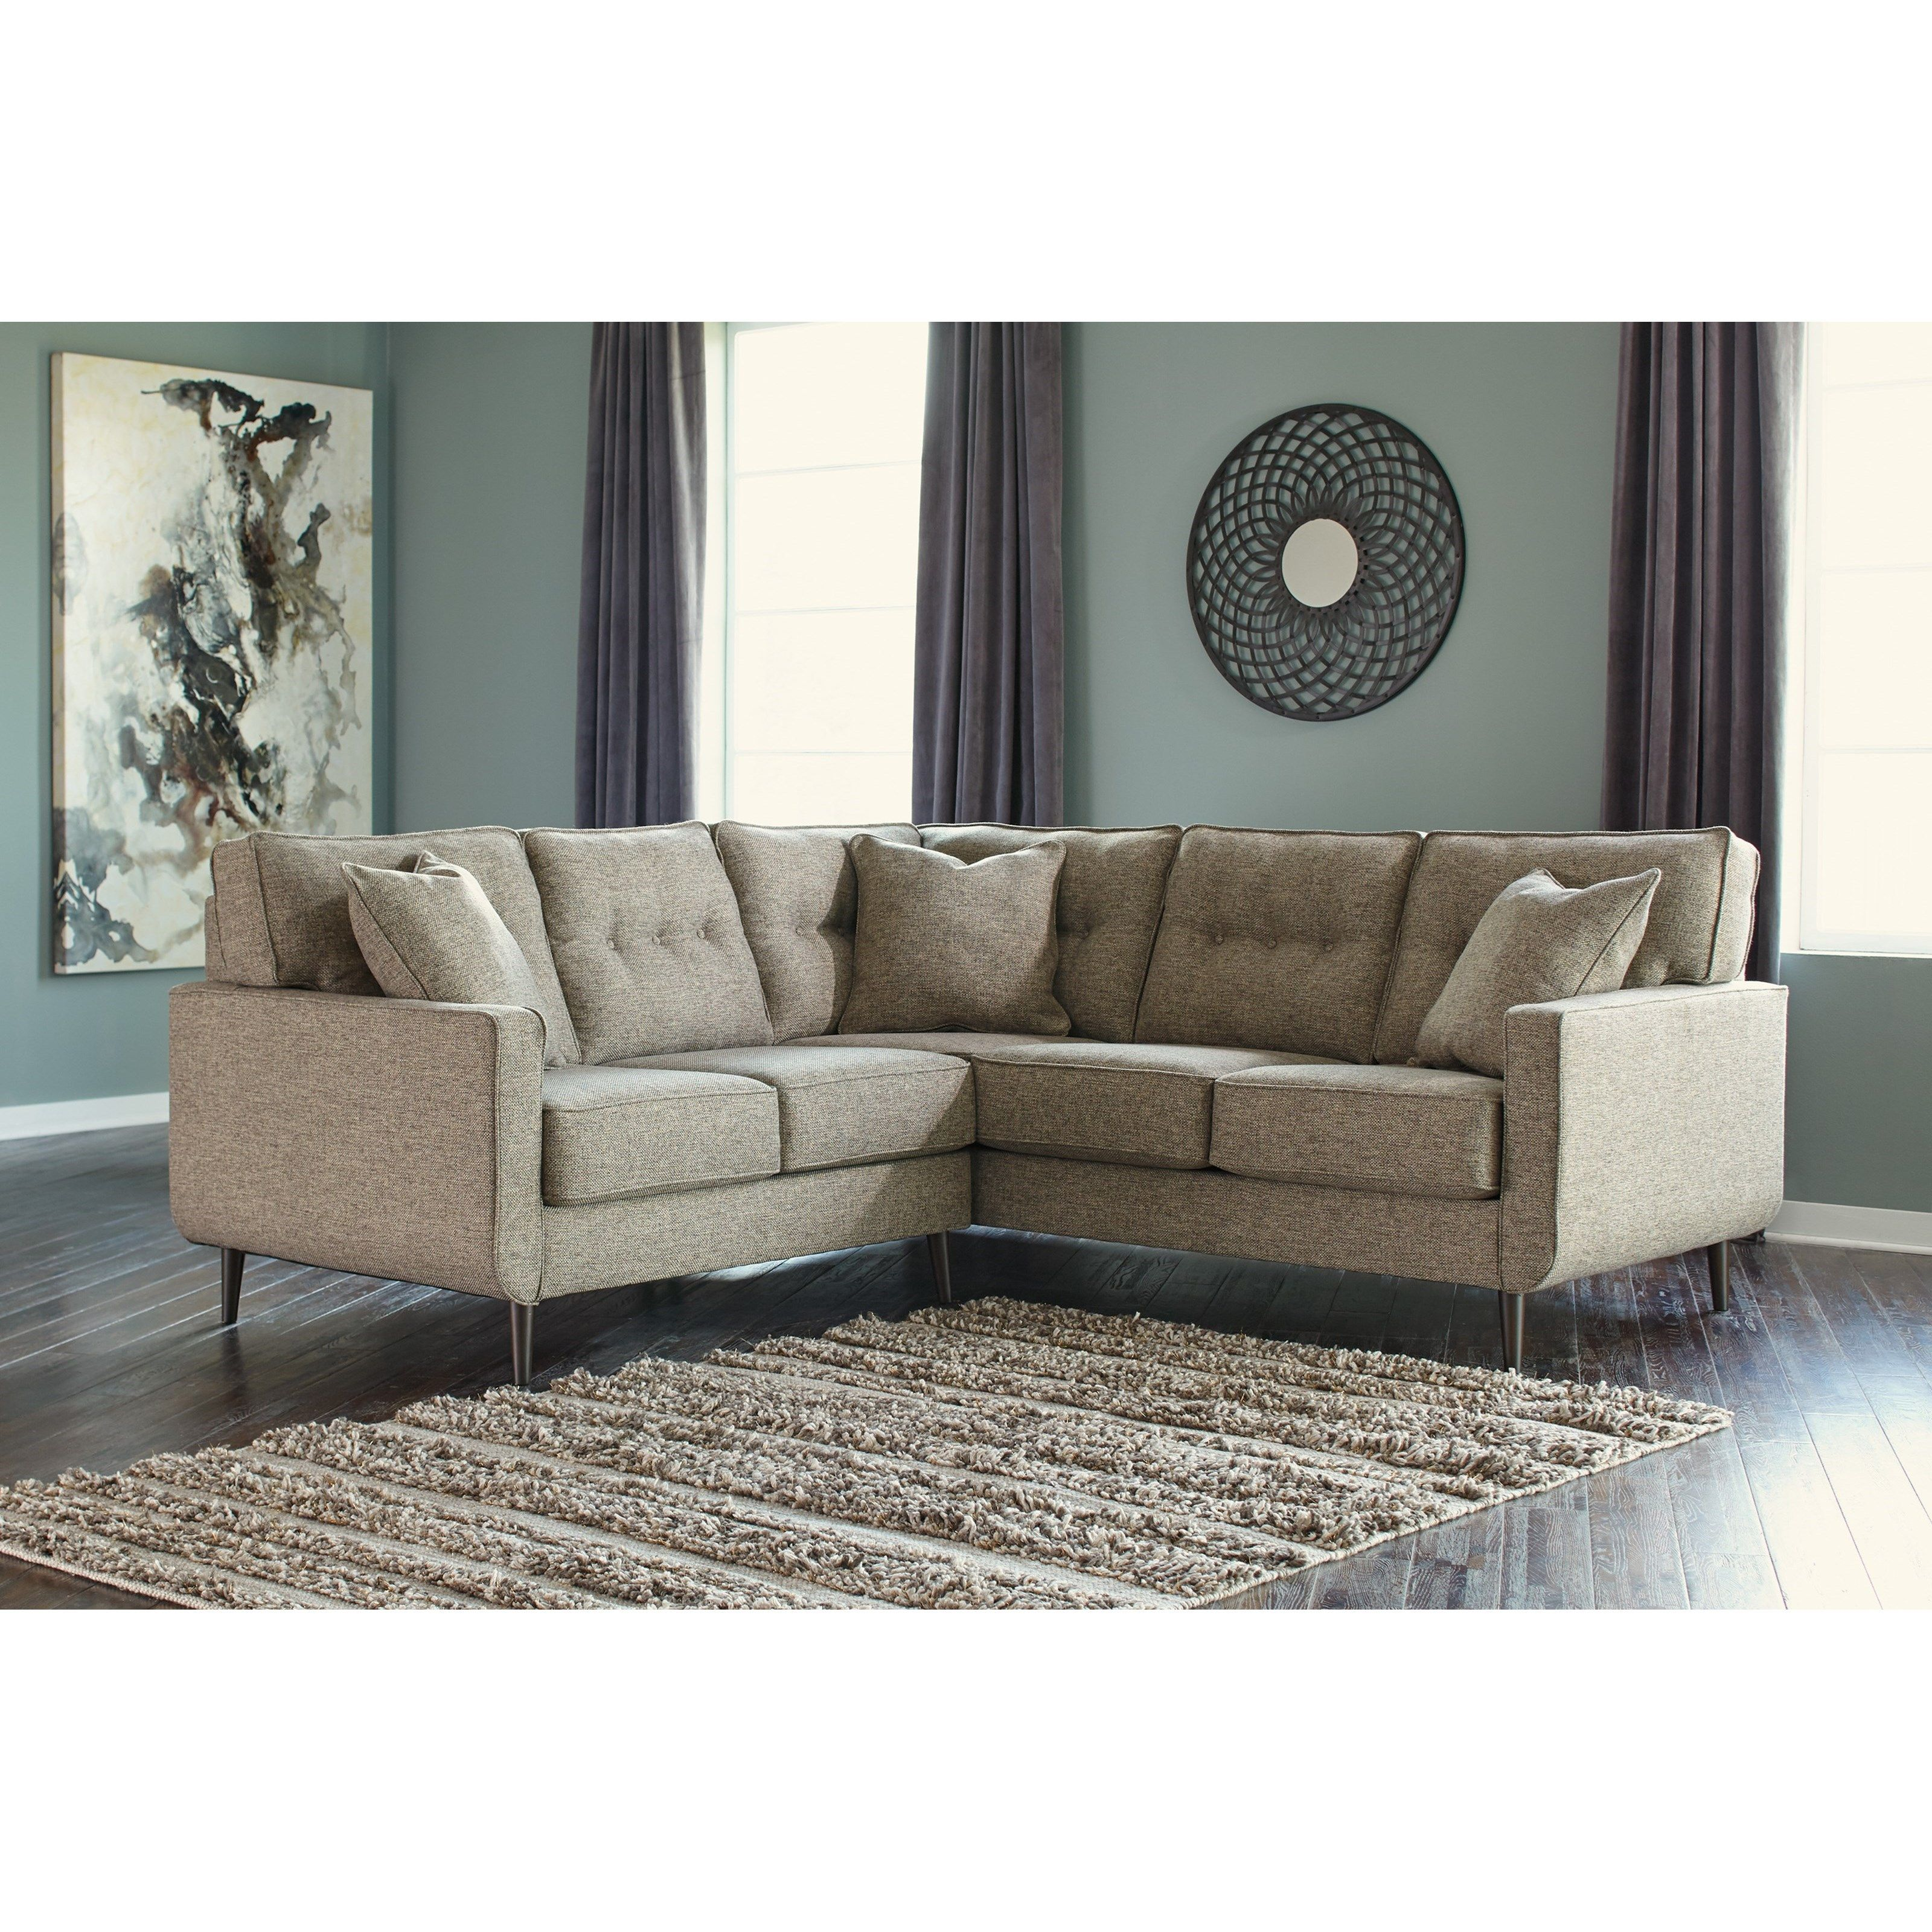 Dahra Mid-Century Modern 2-Piece Sectional by Benchcraft in 2019 ...